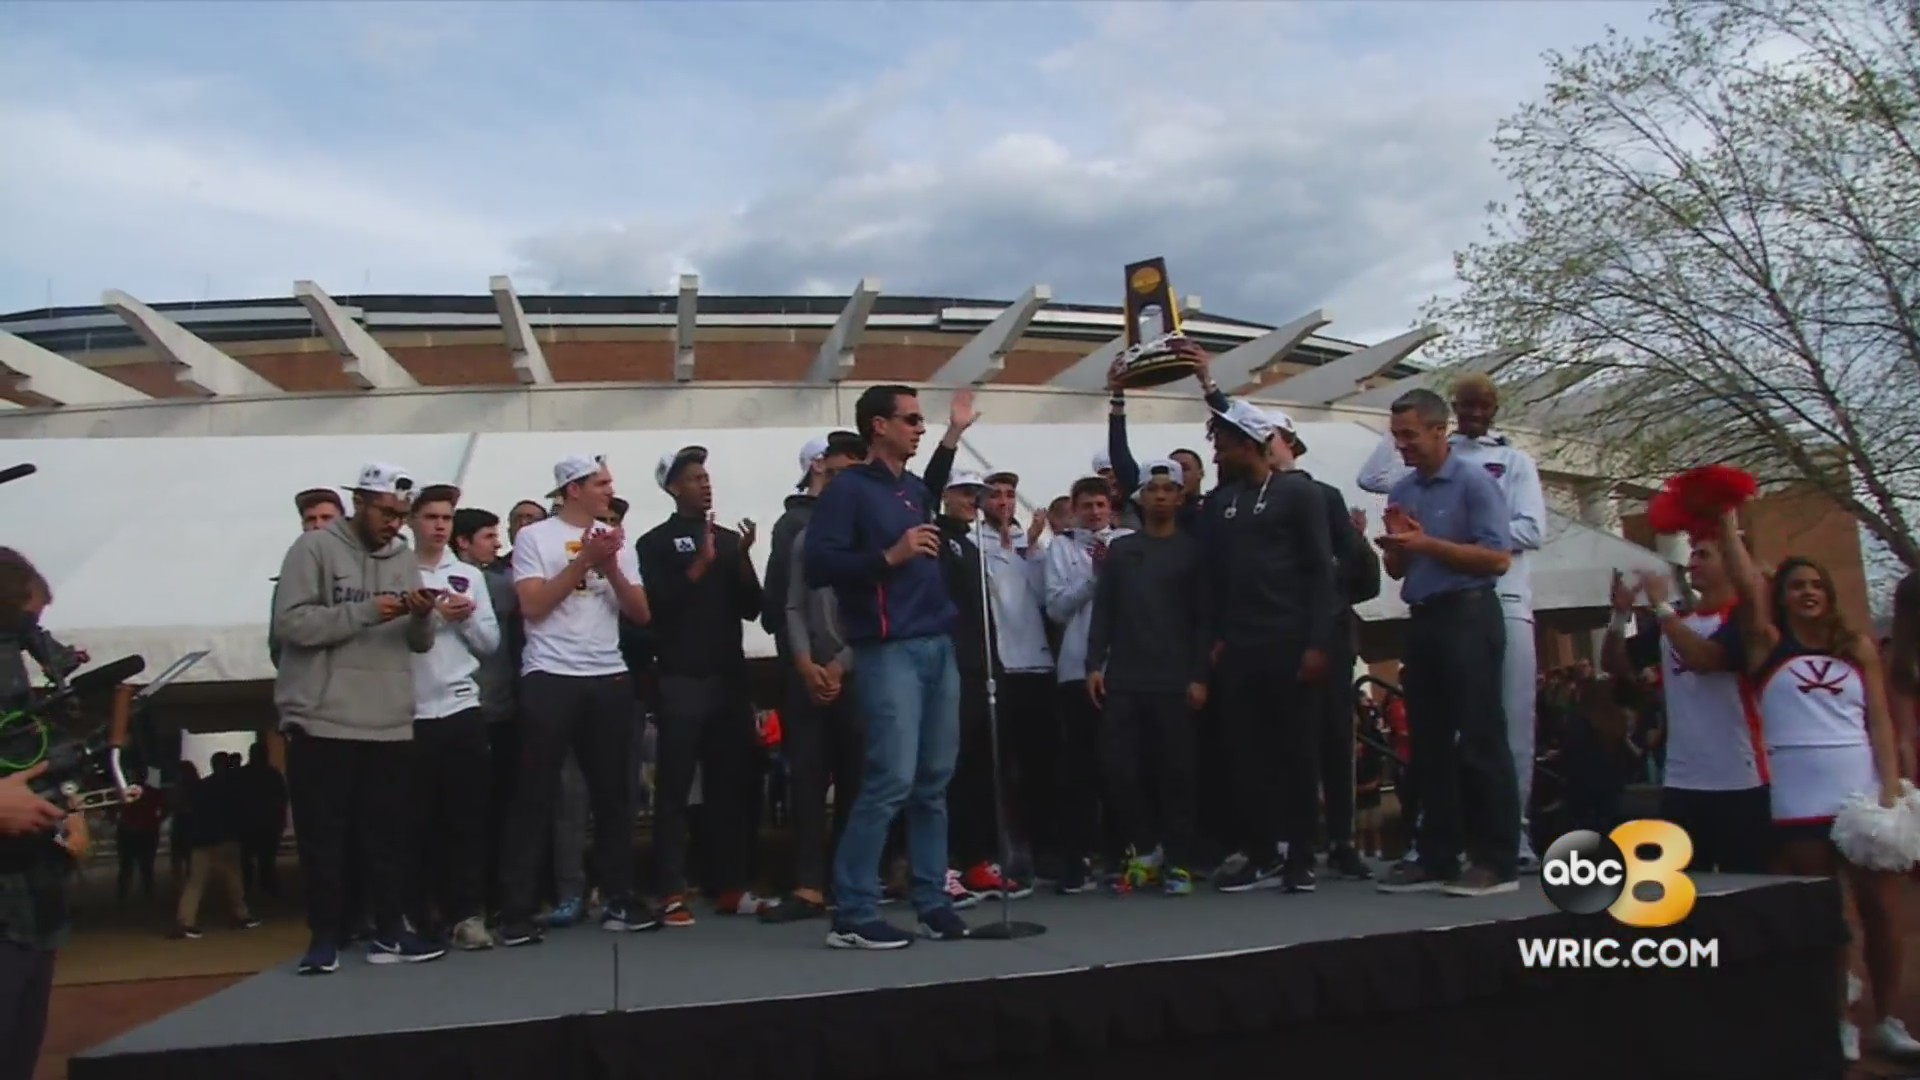 UVA returns home to hundreds of fans after historic National Championship